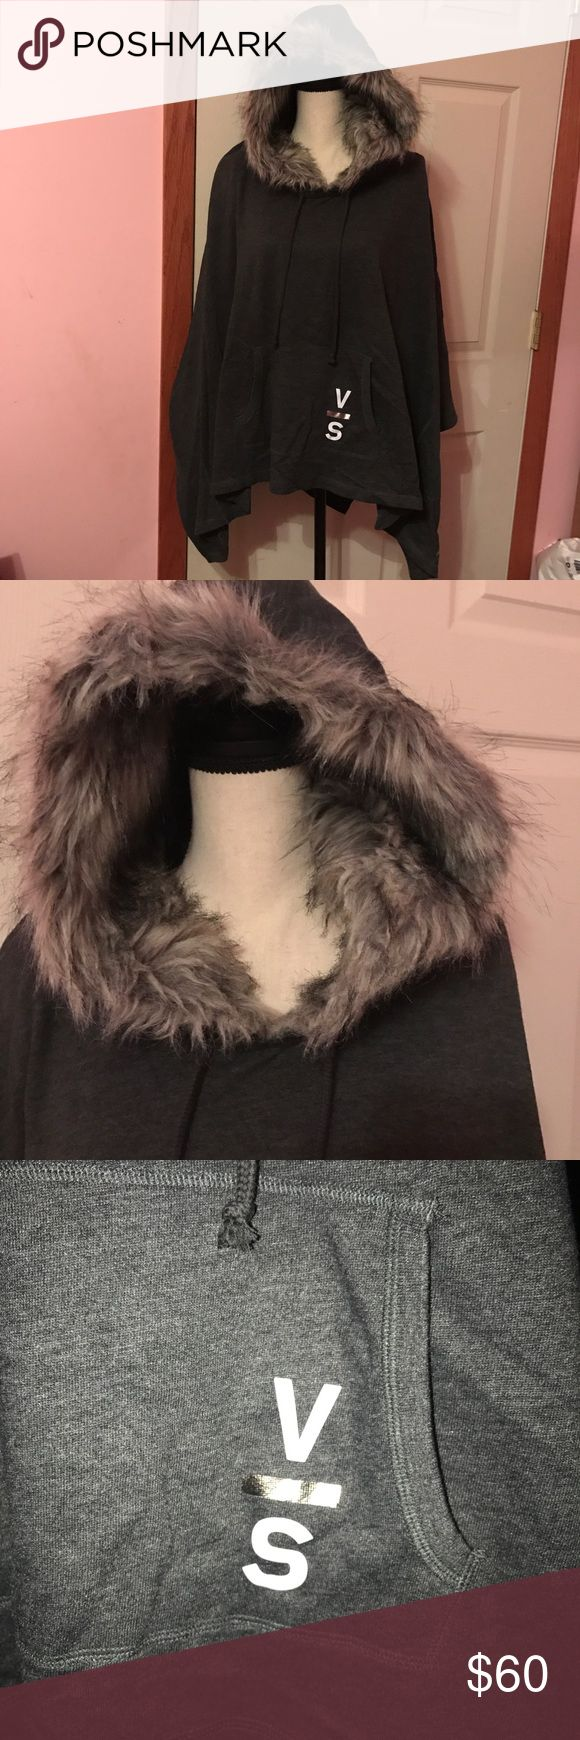 Nwt Victoria's Secret poncho with fur hood Size XS/S but can also fit M/L. Dark grey. Faux fur lined hood. Victoria's Secret Jackets & Coats Capes